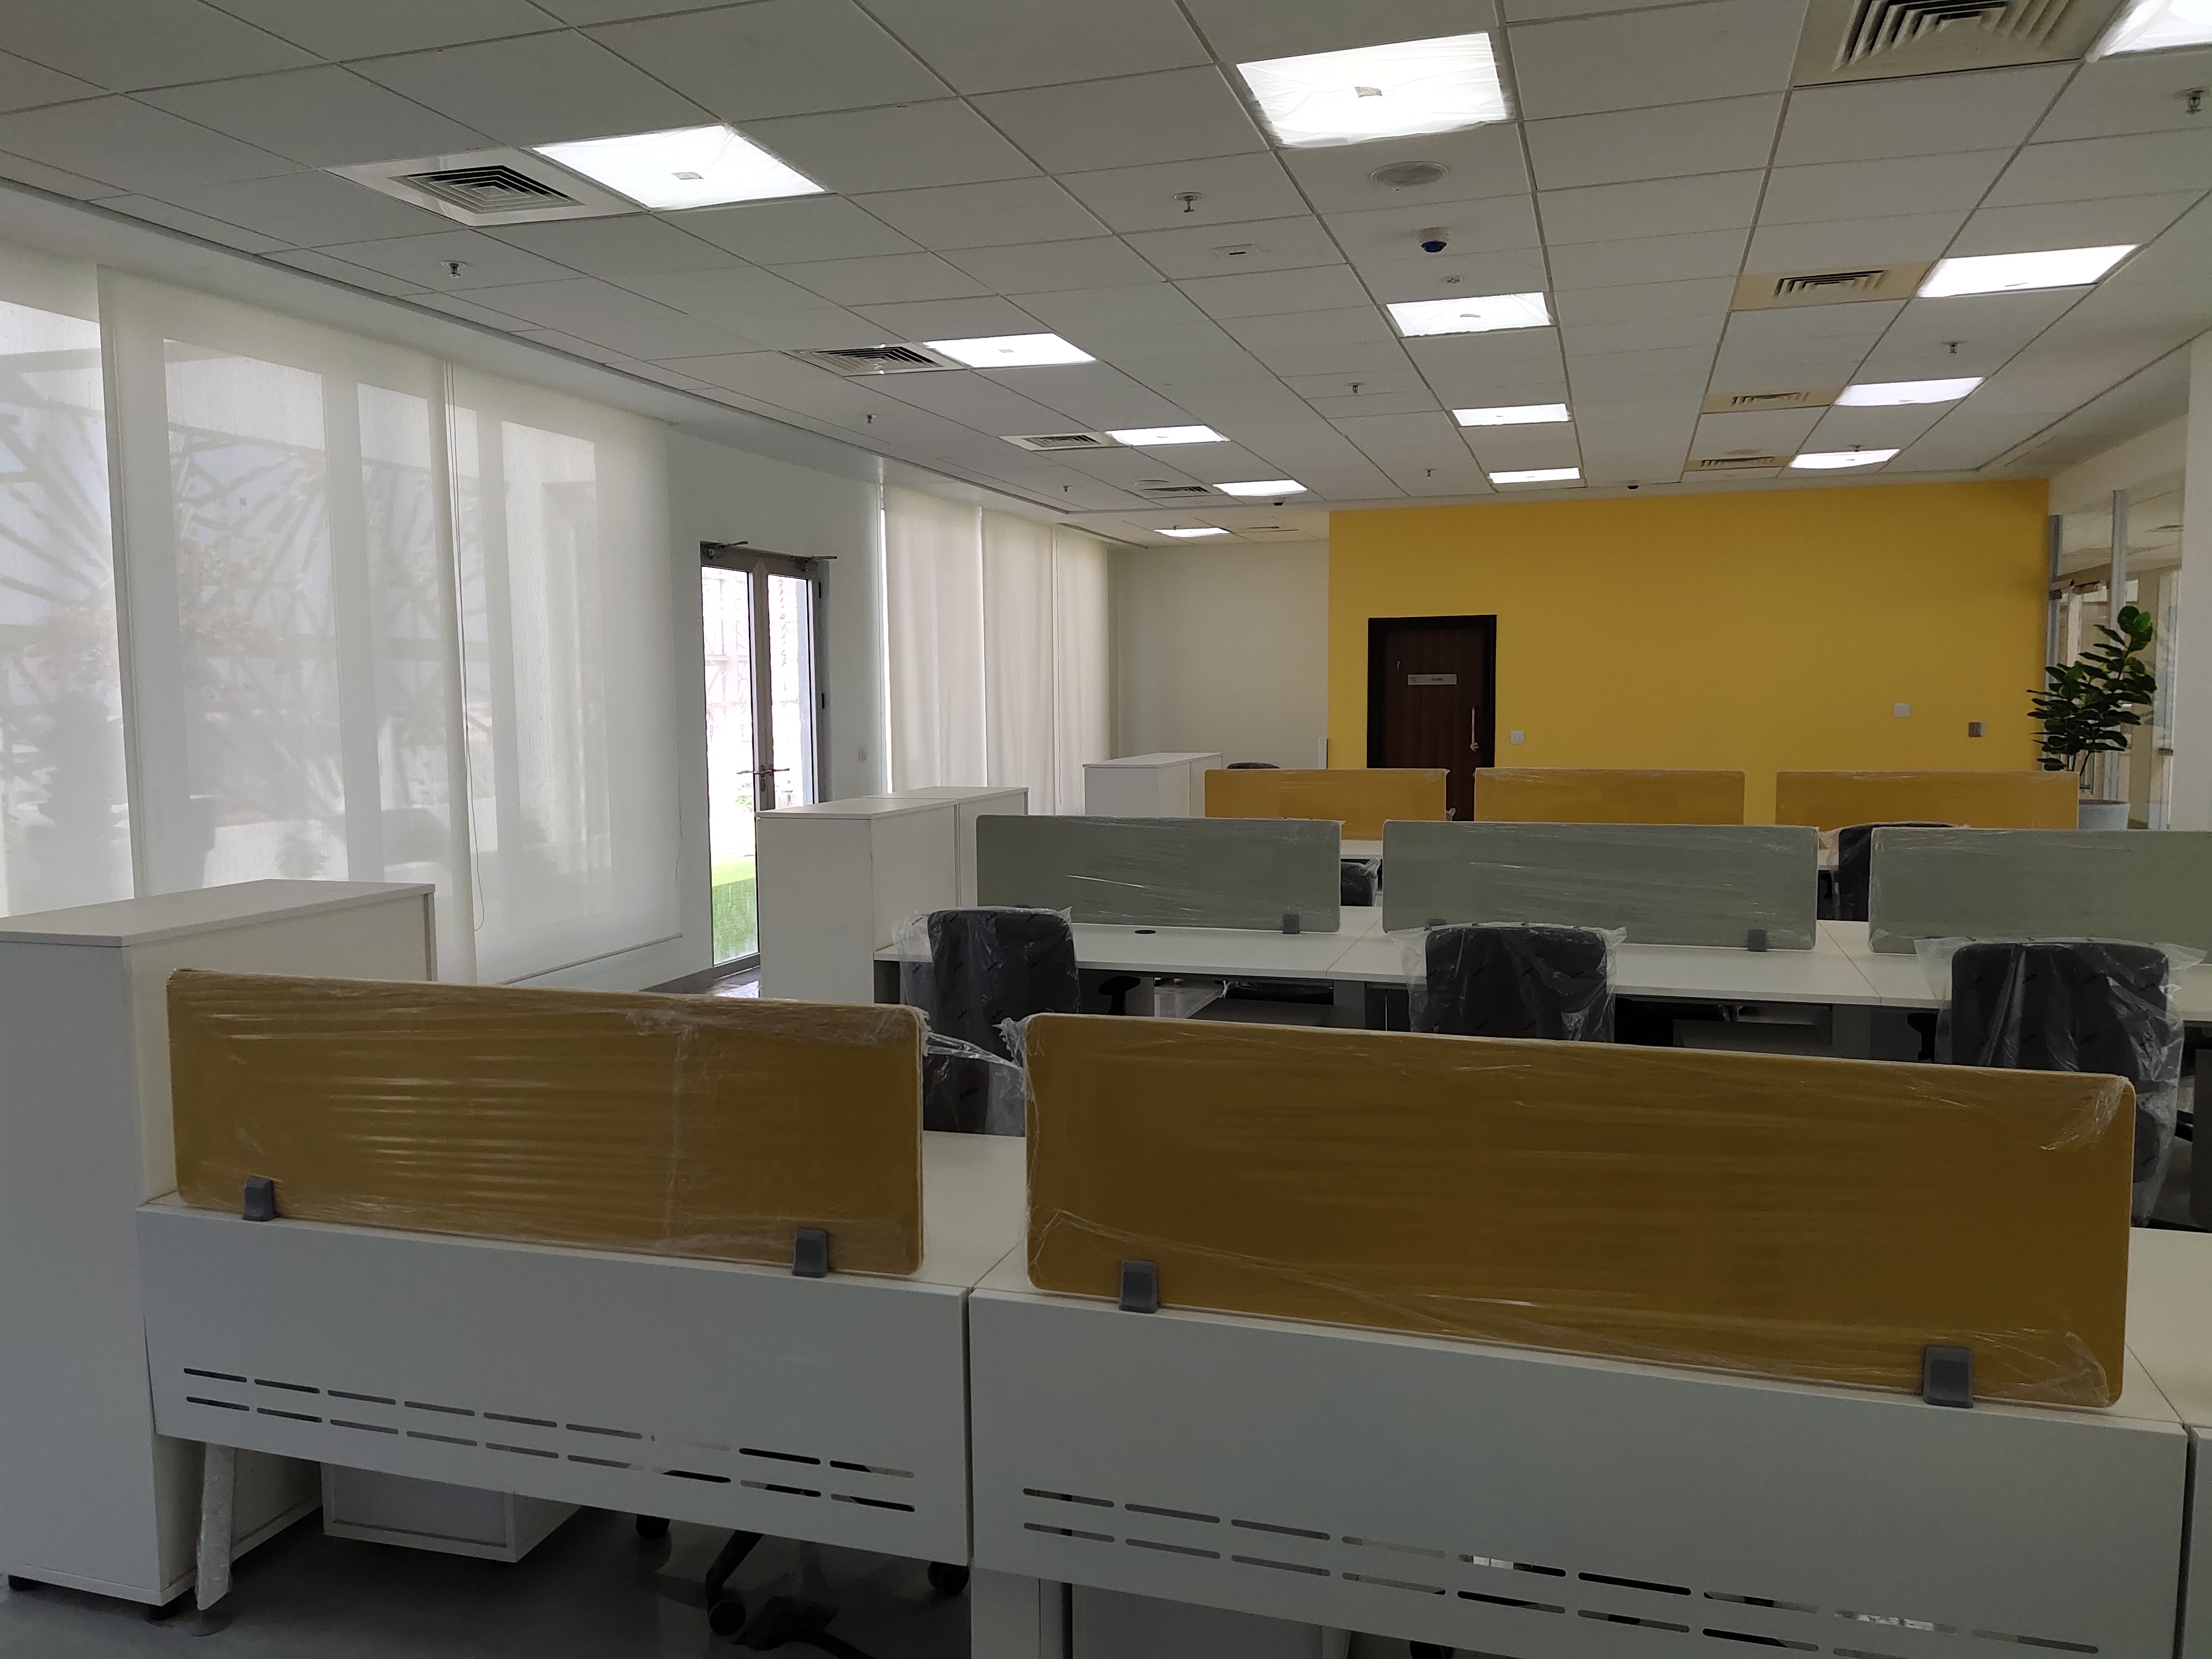 Work Place at AURIC